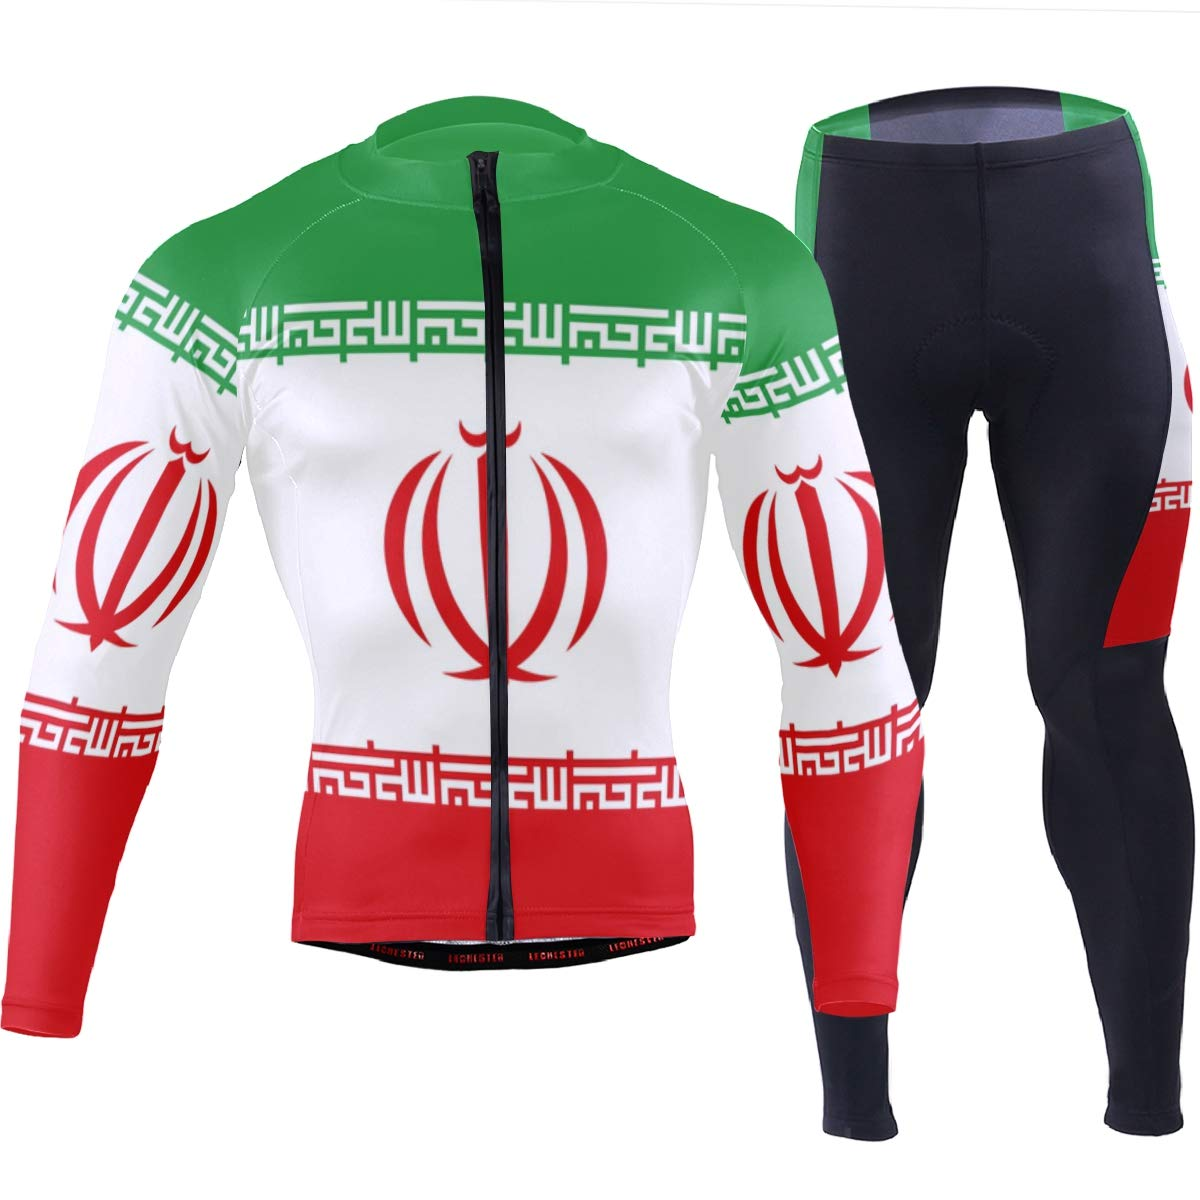 CHINEIN Men's Cycling Jersey Long Sleeve with 3 Rear Pockets Suit Iran Flag